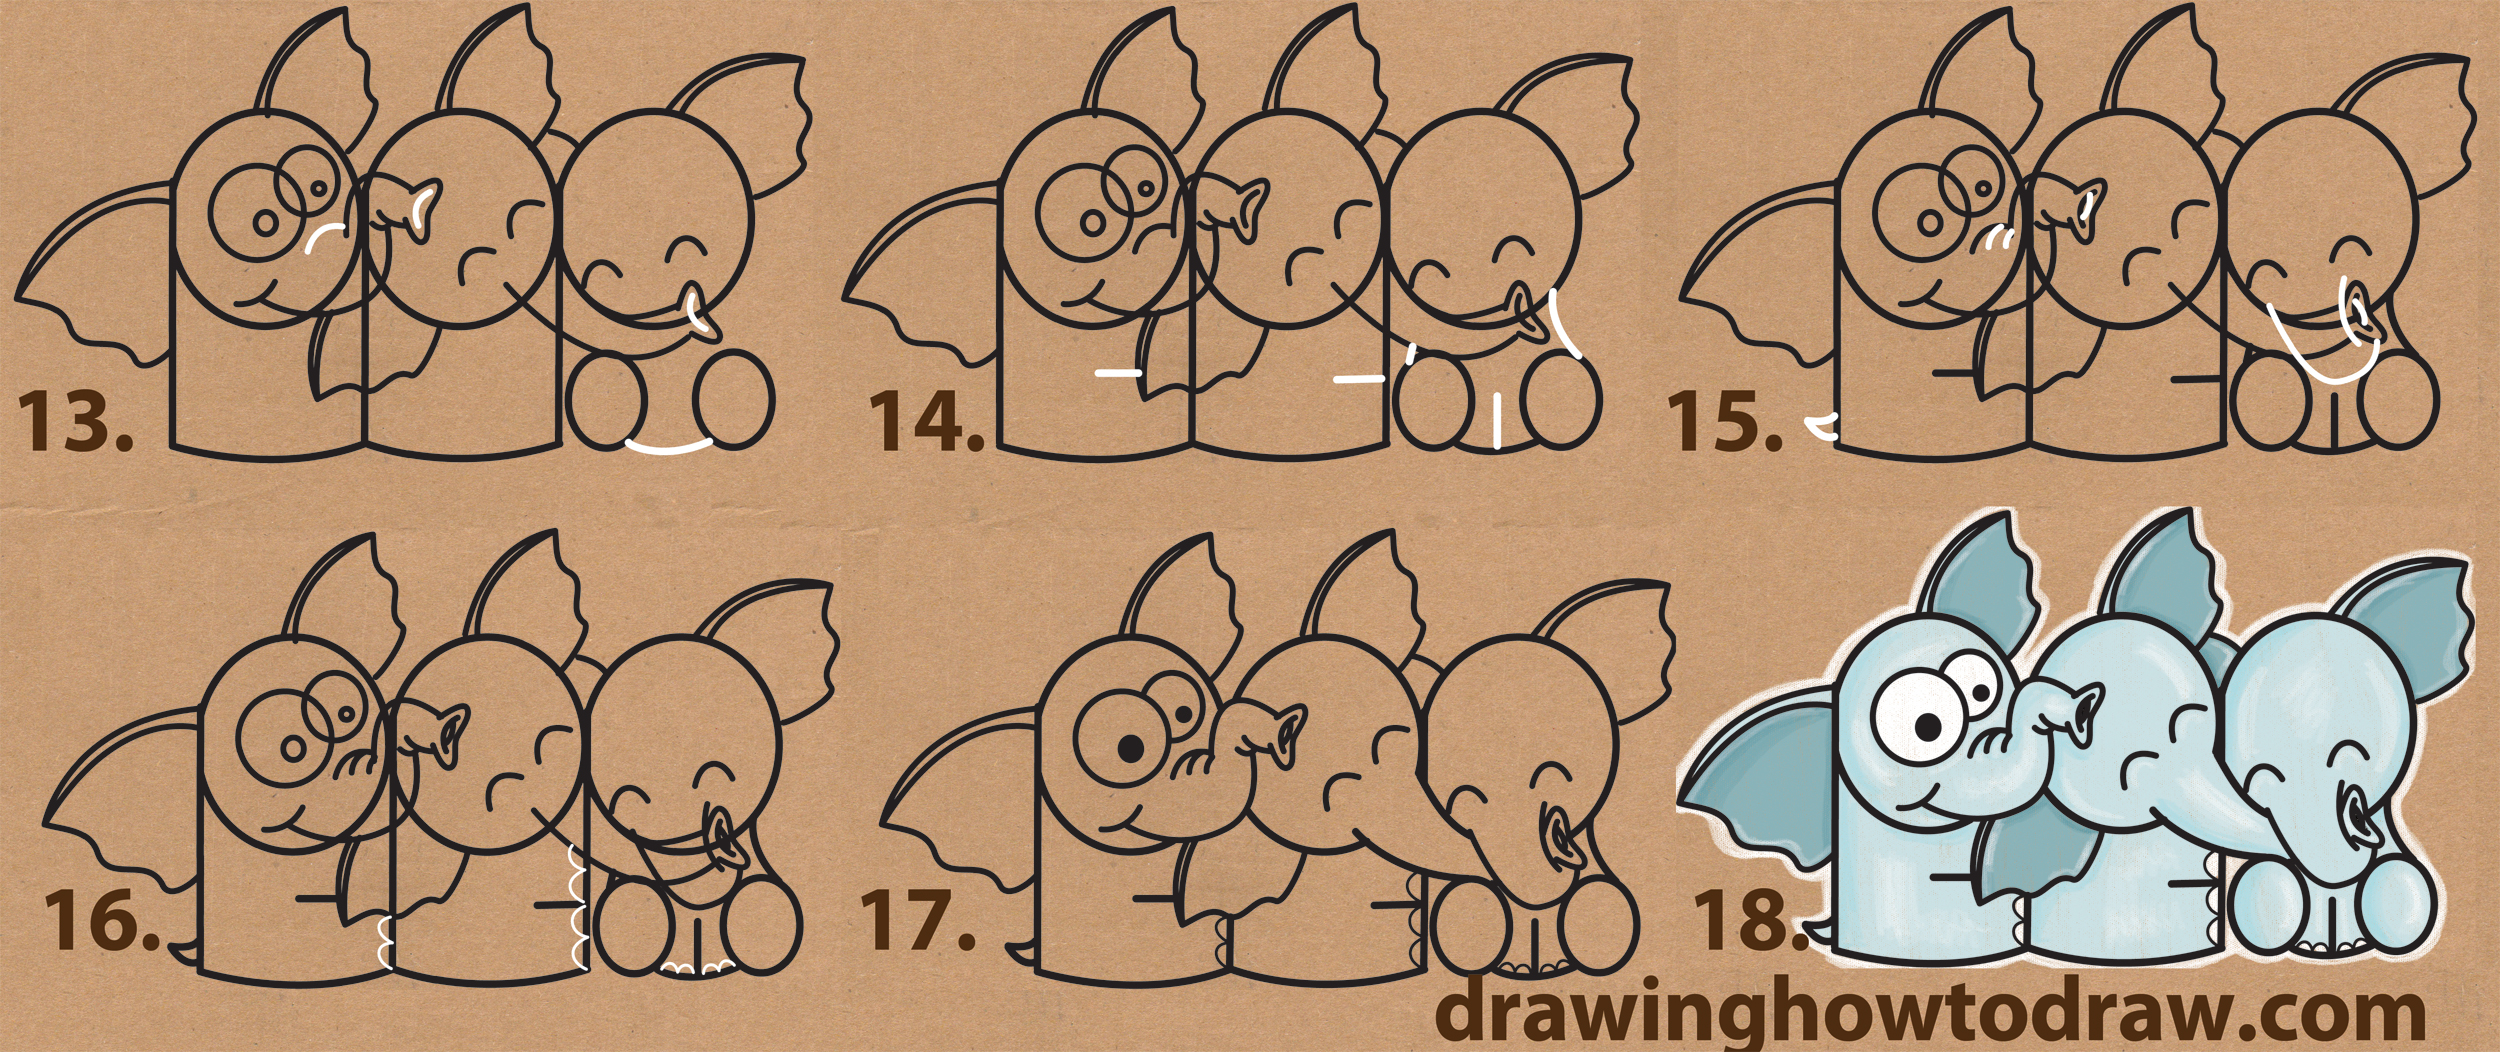 how to draw cute cartoon elephants hugging from letter u0027p u0027 shapes